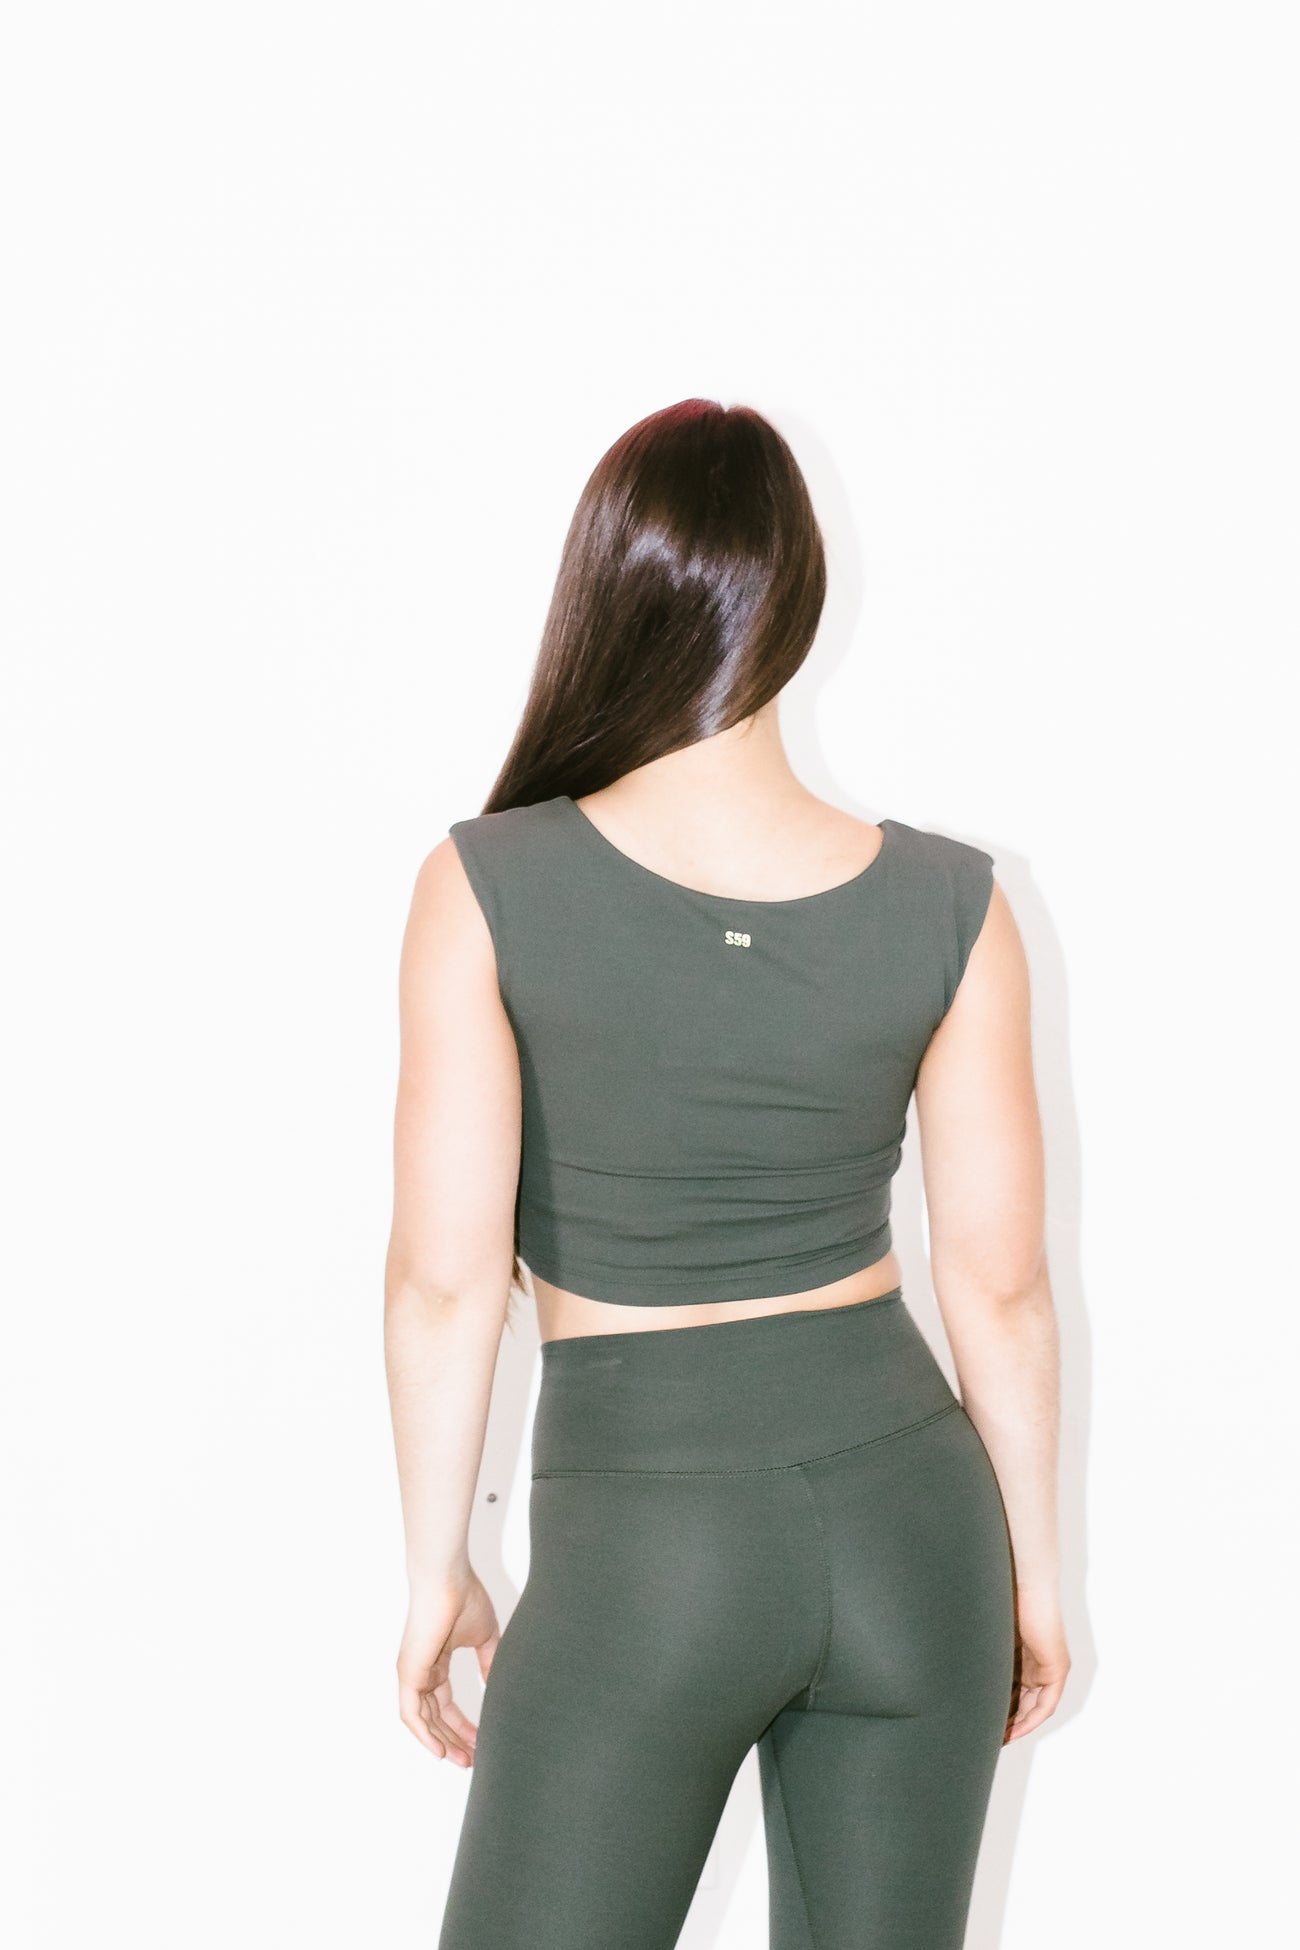 Airweight Cap Sleeve Top in Army